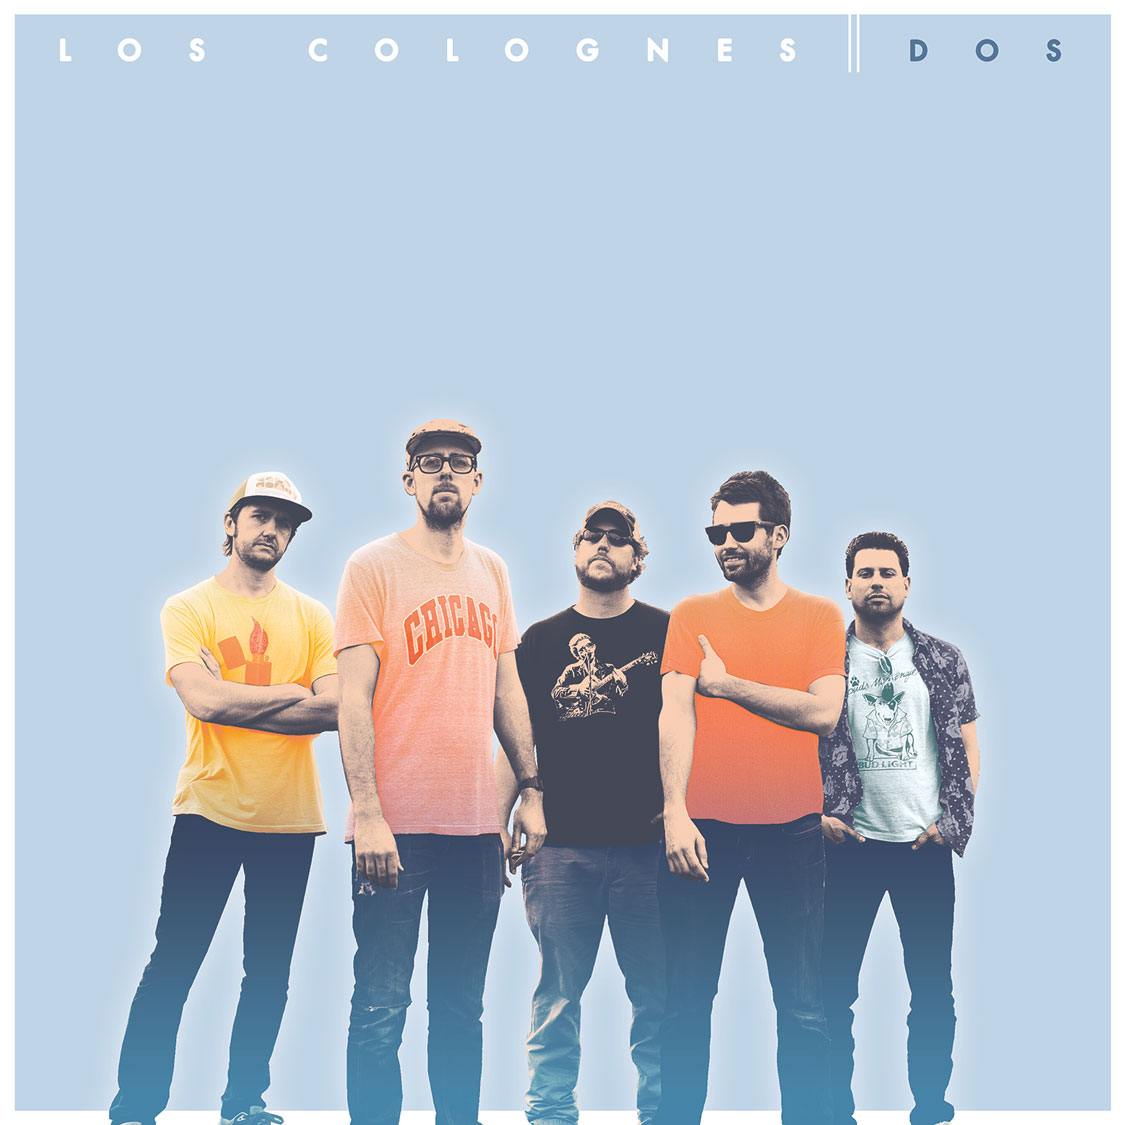 LISTEN: Los Colognes, 'Baby You Can't Have Both'